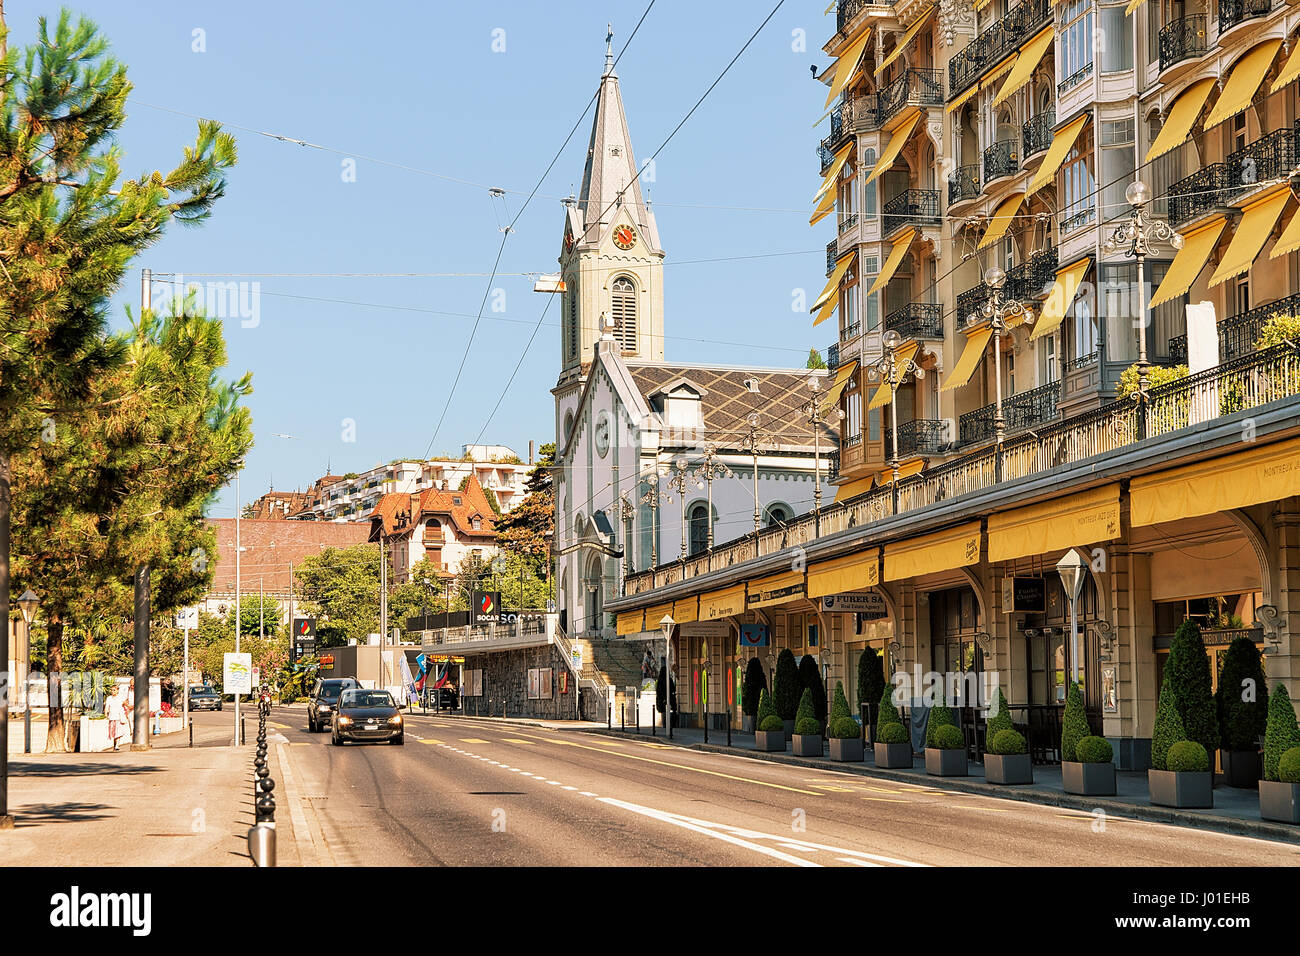 Montreux, Switzerland - August 27, 2016: Church and Luxury hotel on Geneva Lake Riviera in Montreux, Vaud canton, - Stock Image